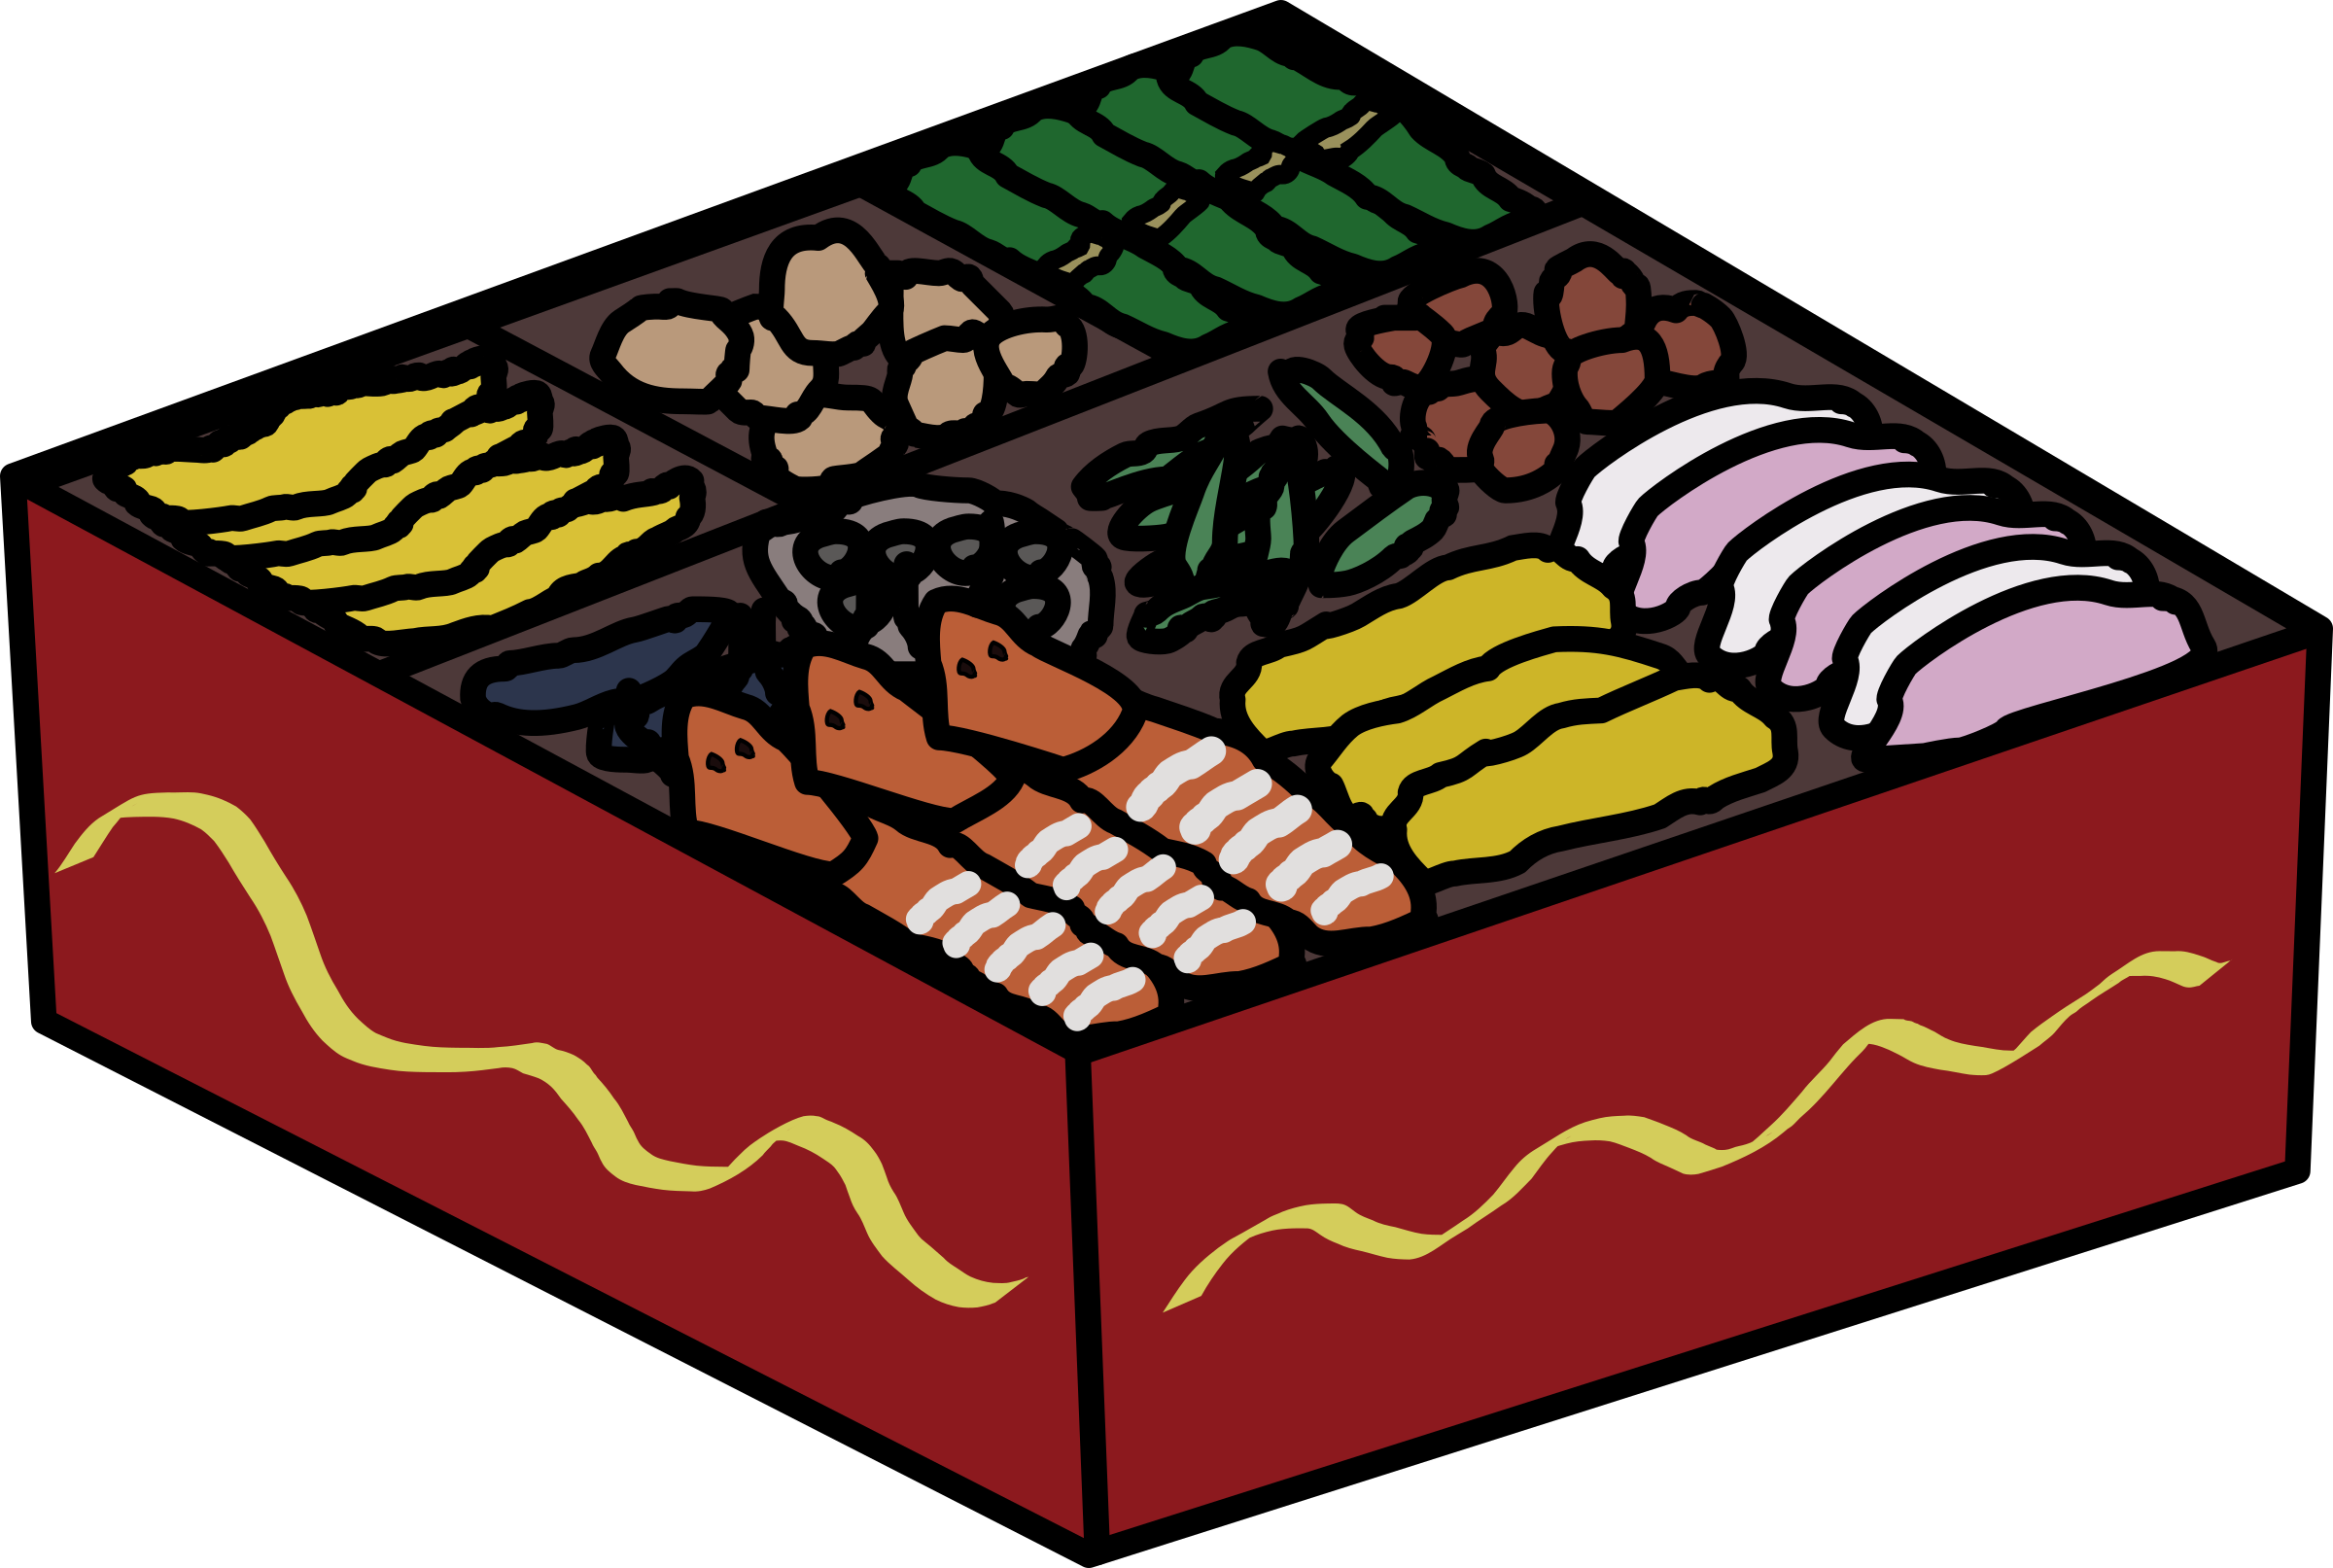 Osechi Food by j4p4n